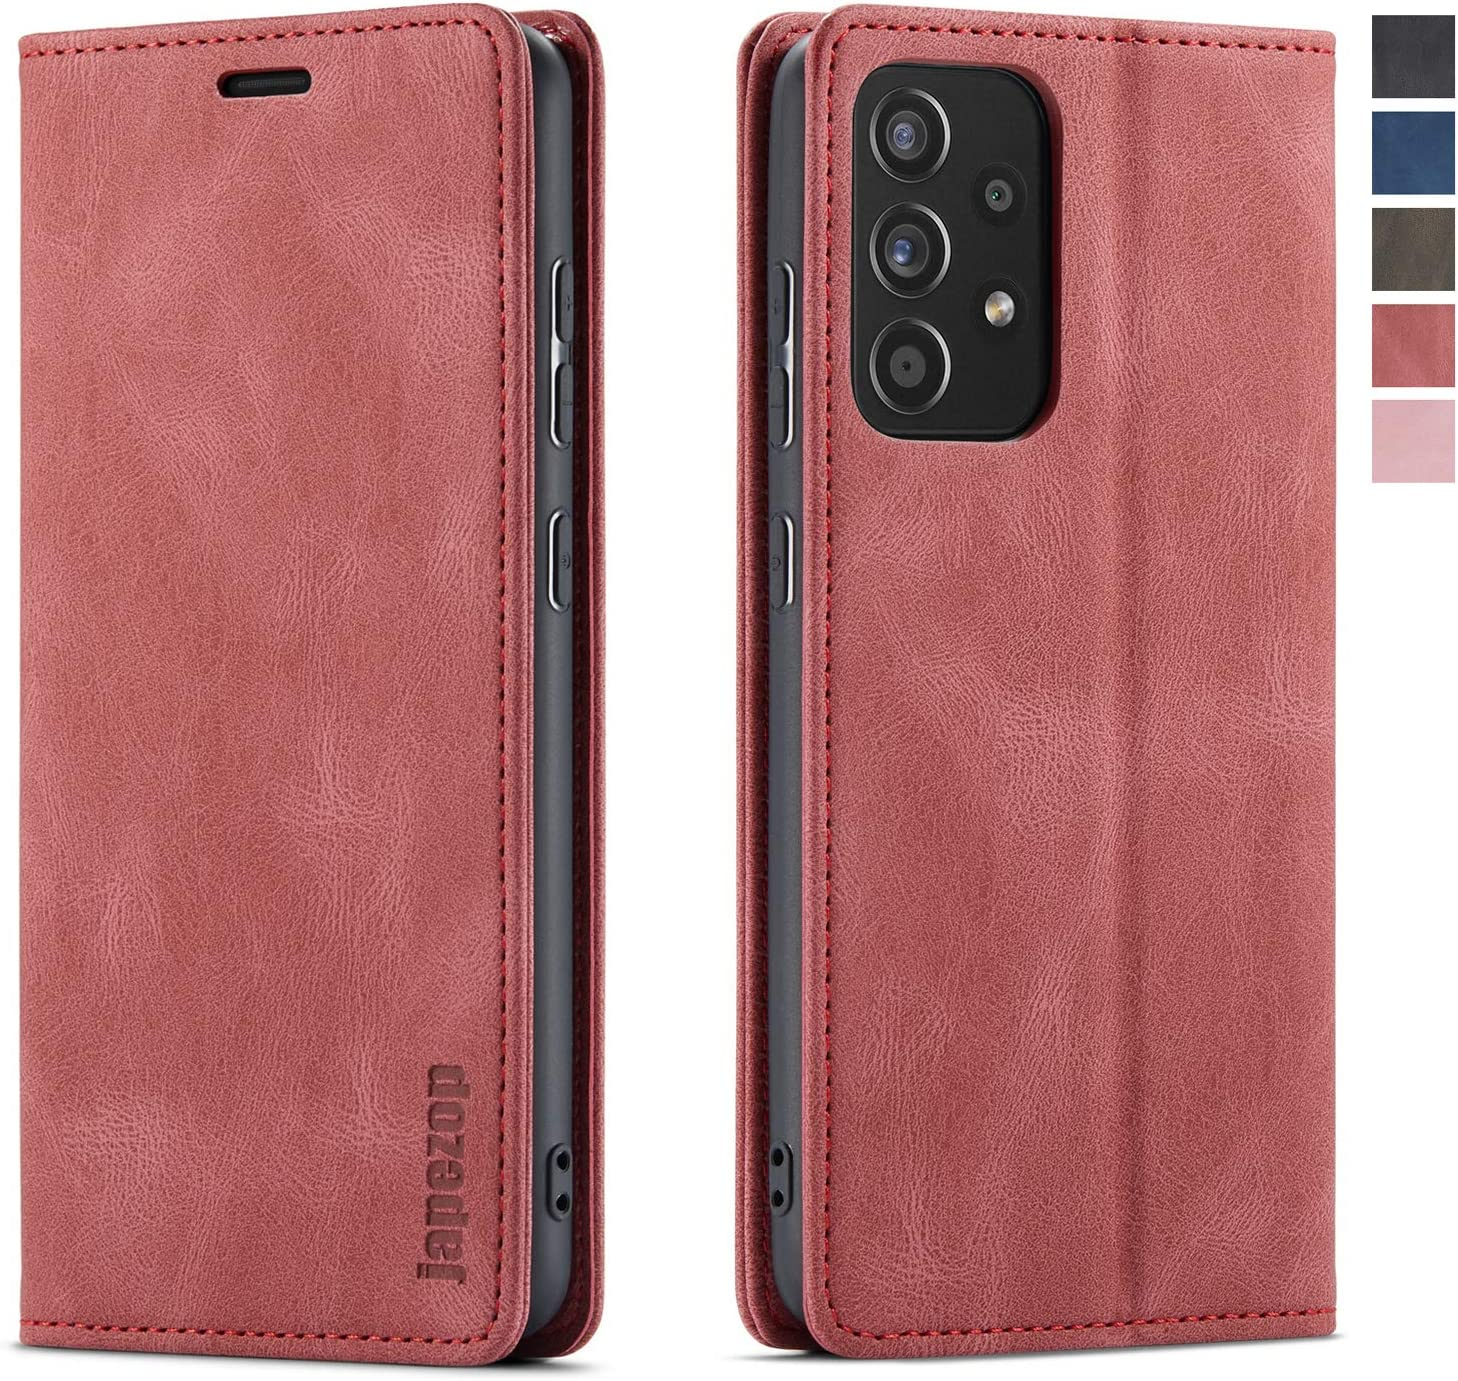 Samsung Galaxy A52 5G Case,Samsung Galaxy A52 5G Wallet Case for Women with Card Holder [RFID Blocking] Kickstand Magnetic,Leather Flip Case for Samsung Galaxy A52 5G 6.5 Inch (Wine Red)